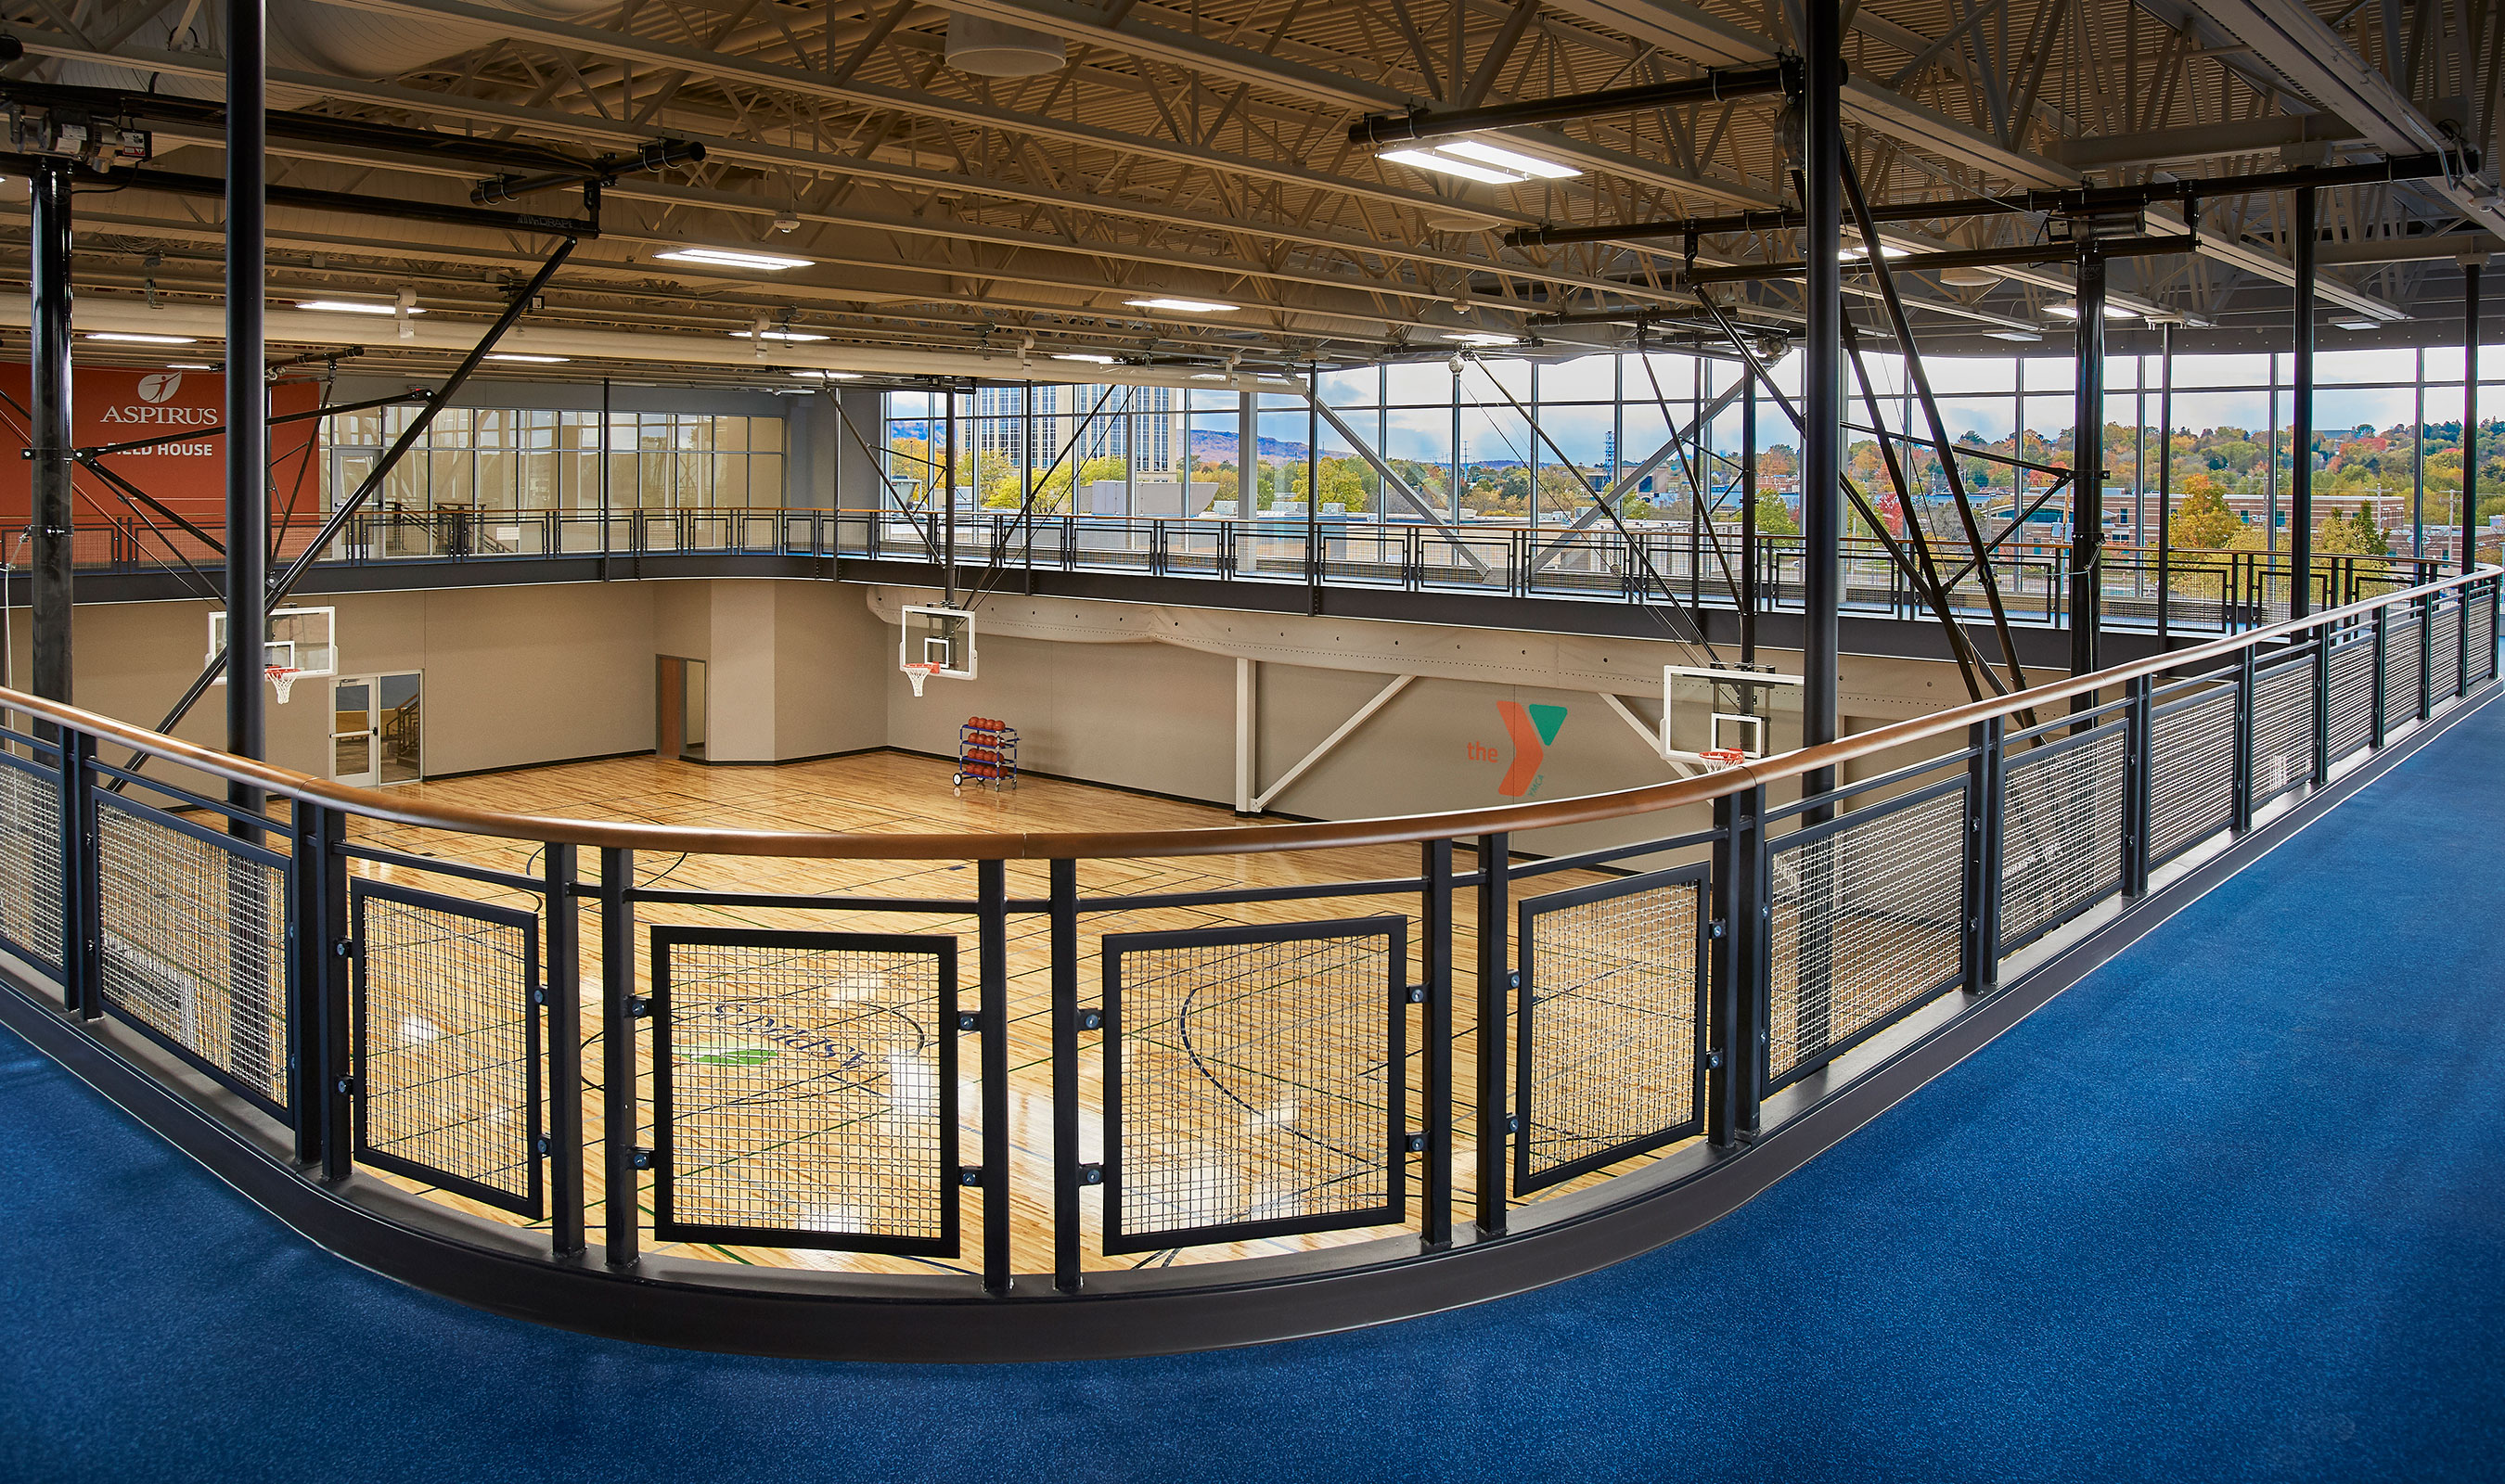 Banker Wire's SJD-2 was chosen as railing infill because it allowed the designer to control the amount fo light that filtered inbehind the backboards to reduce contrast.